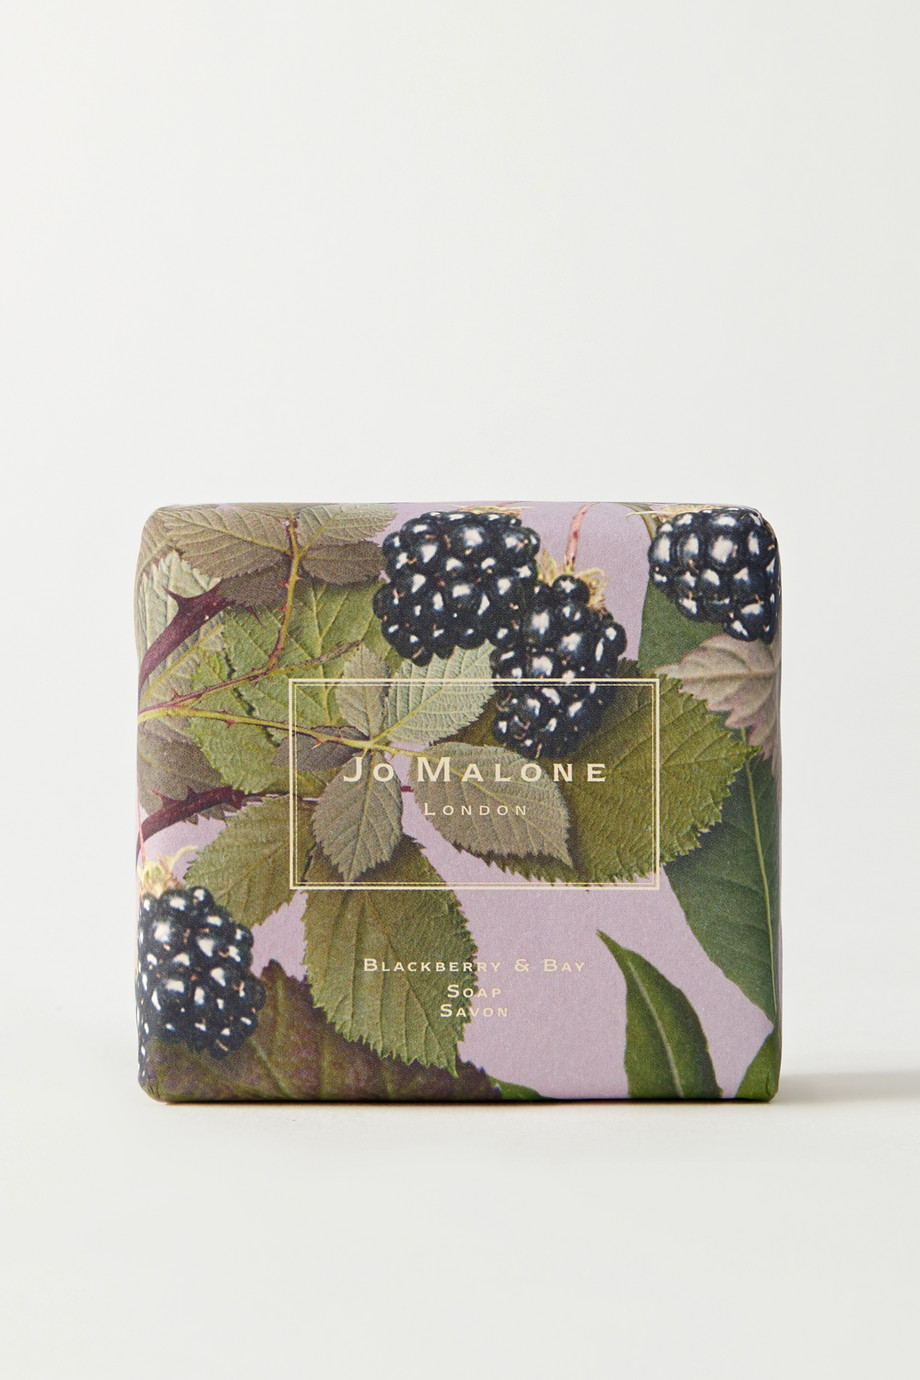 Jo Malone London Blackberry & Bay Soap, 100g